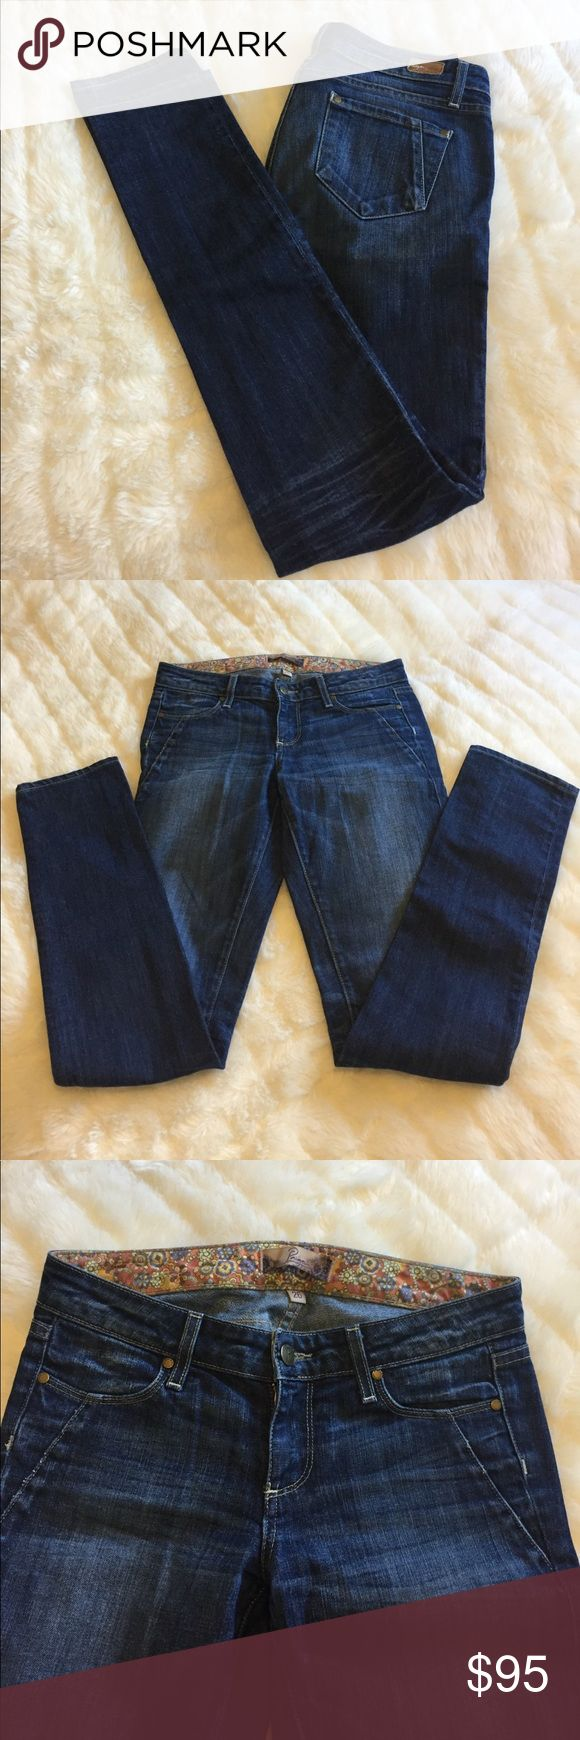 """‼️SALE‼️ ADORABLE Paige Skyline Drive Skinny Jeans. Size 26"""", inseam: 33.5. Only worn a few times, still in great, close to new condition. I am SO sad to part with these, but I've gained weight since I bought them, and they're just too small for me. That being said, they fit true to size. This is my favorite style of Paige jeans, they look super good on, & can be dressed up or down. Paige Jeans Jeans Skinny"""